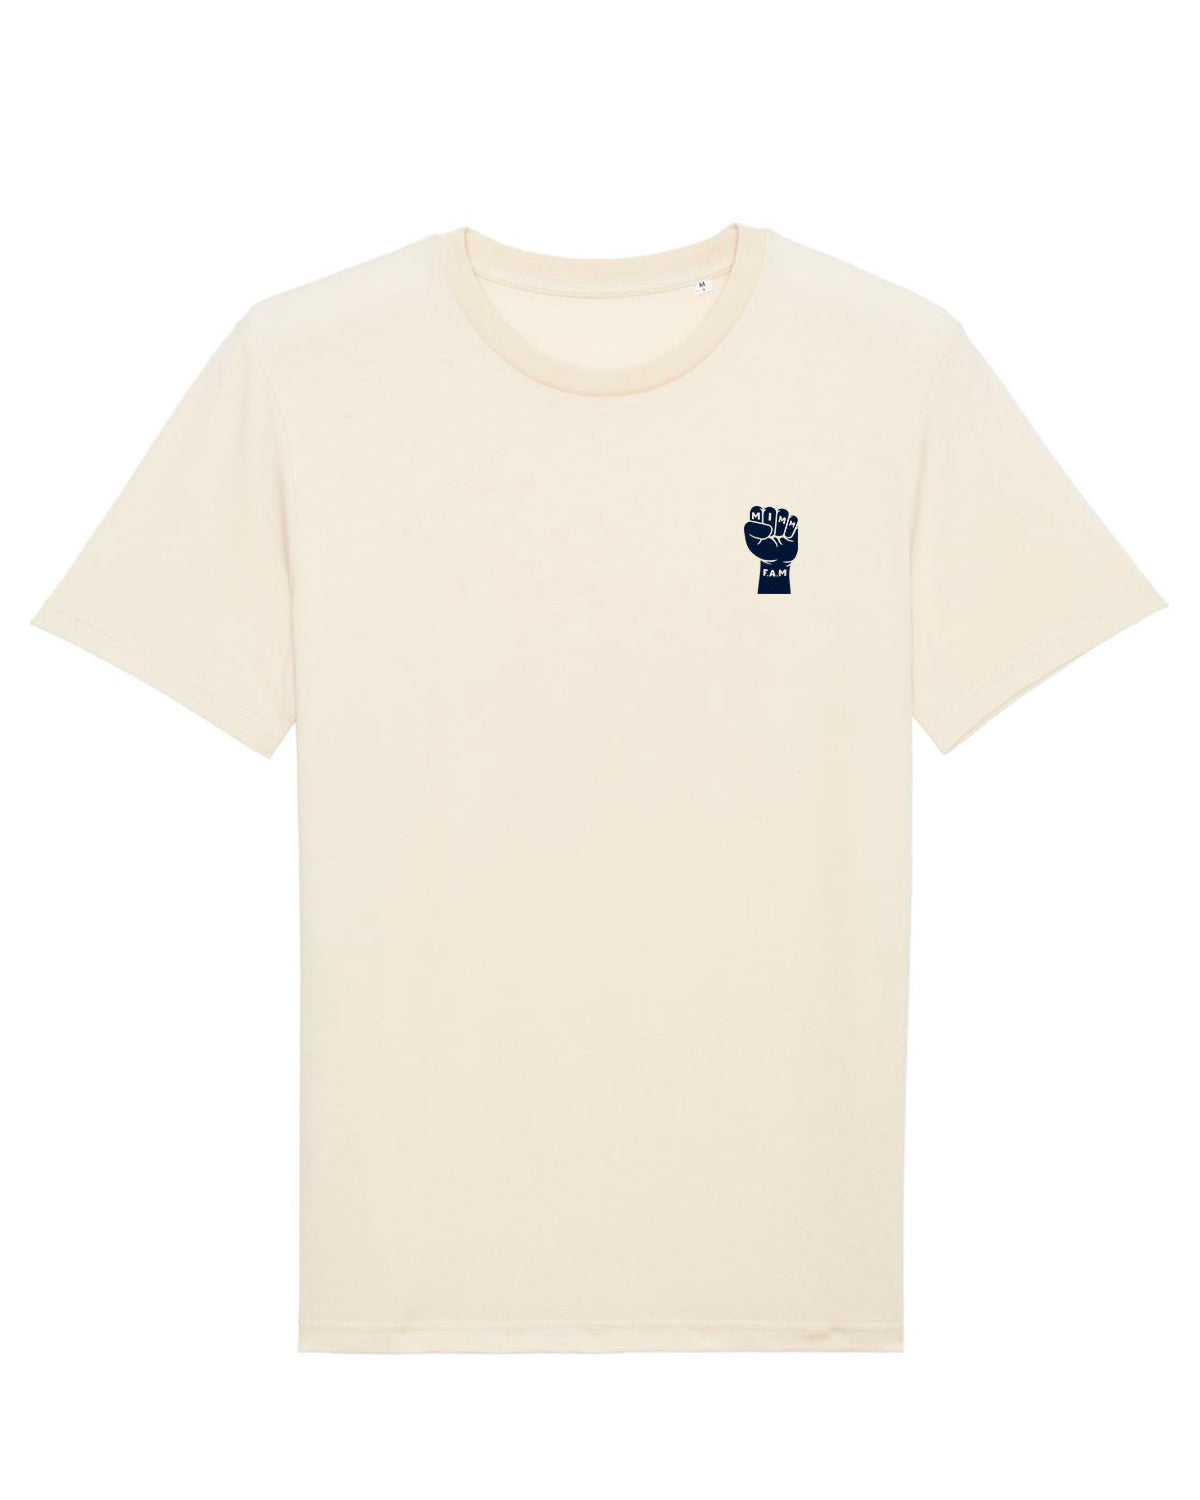 Mimm F.A.M Fist T-Shirt (Natural)